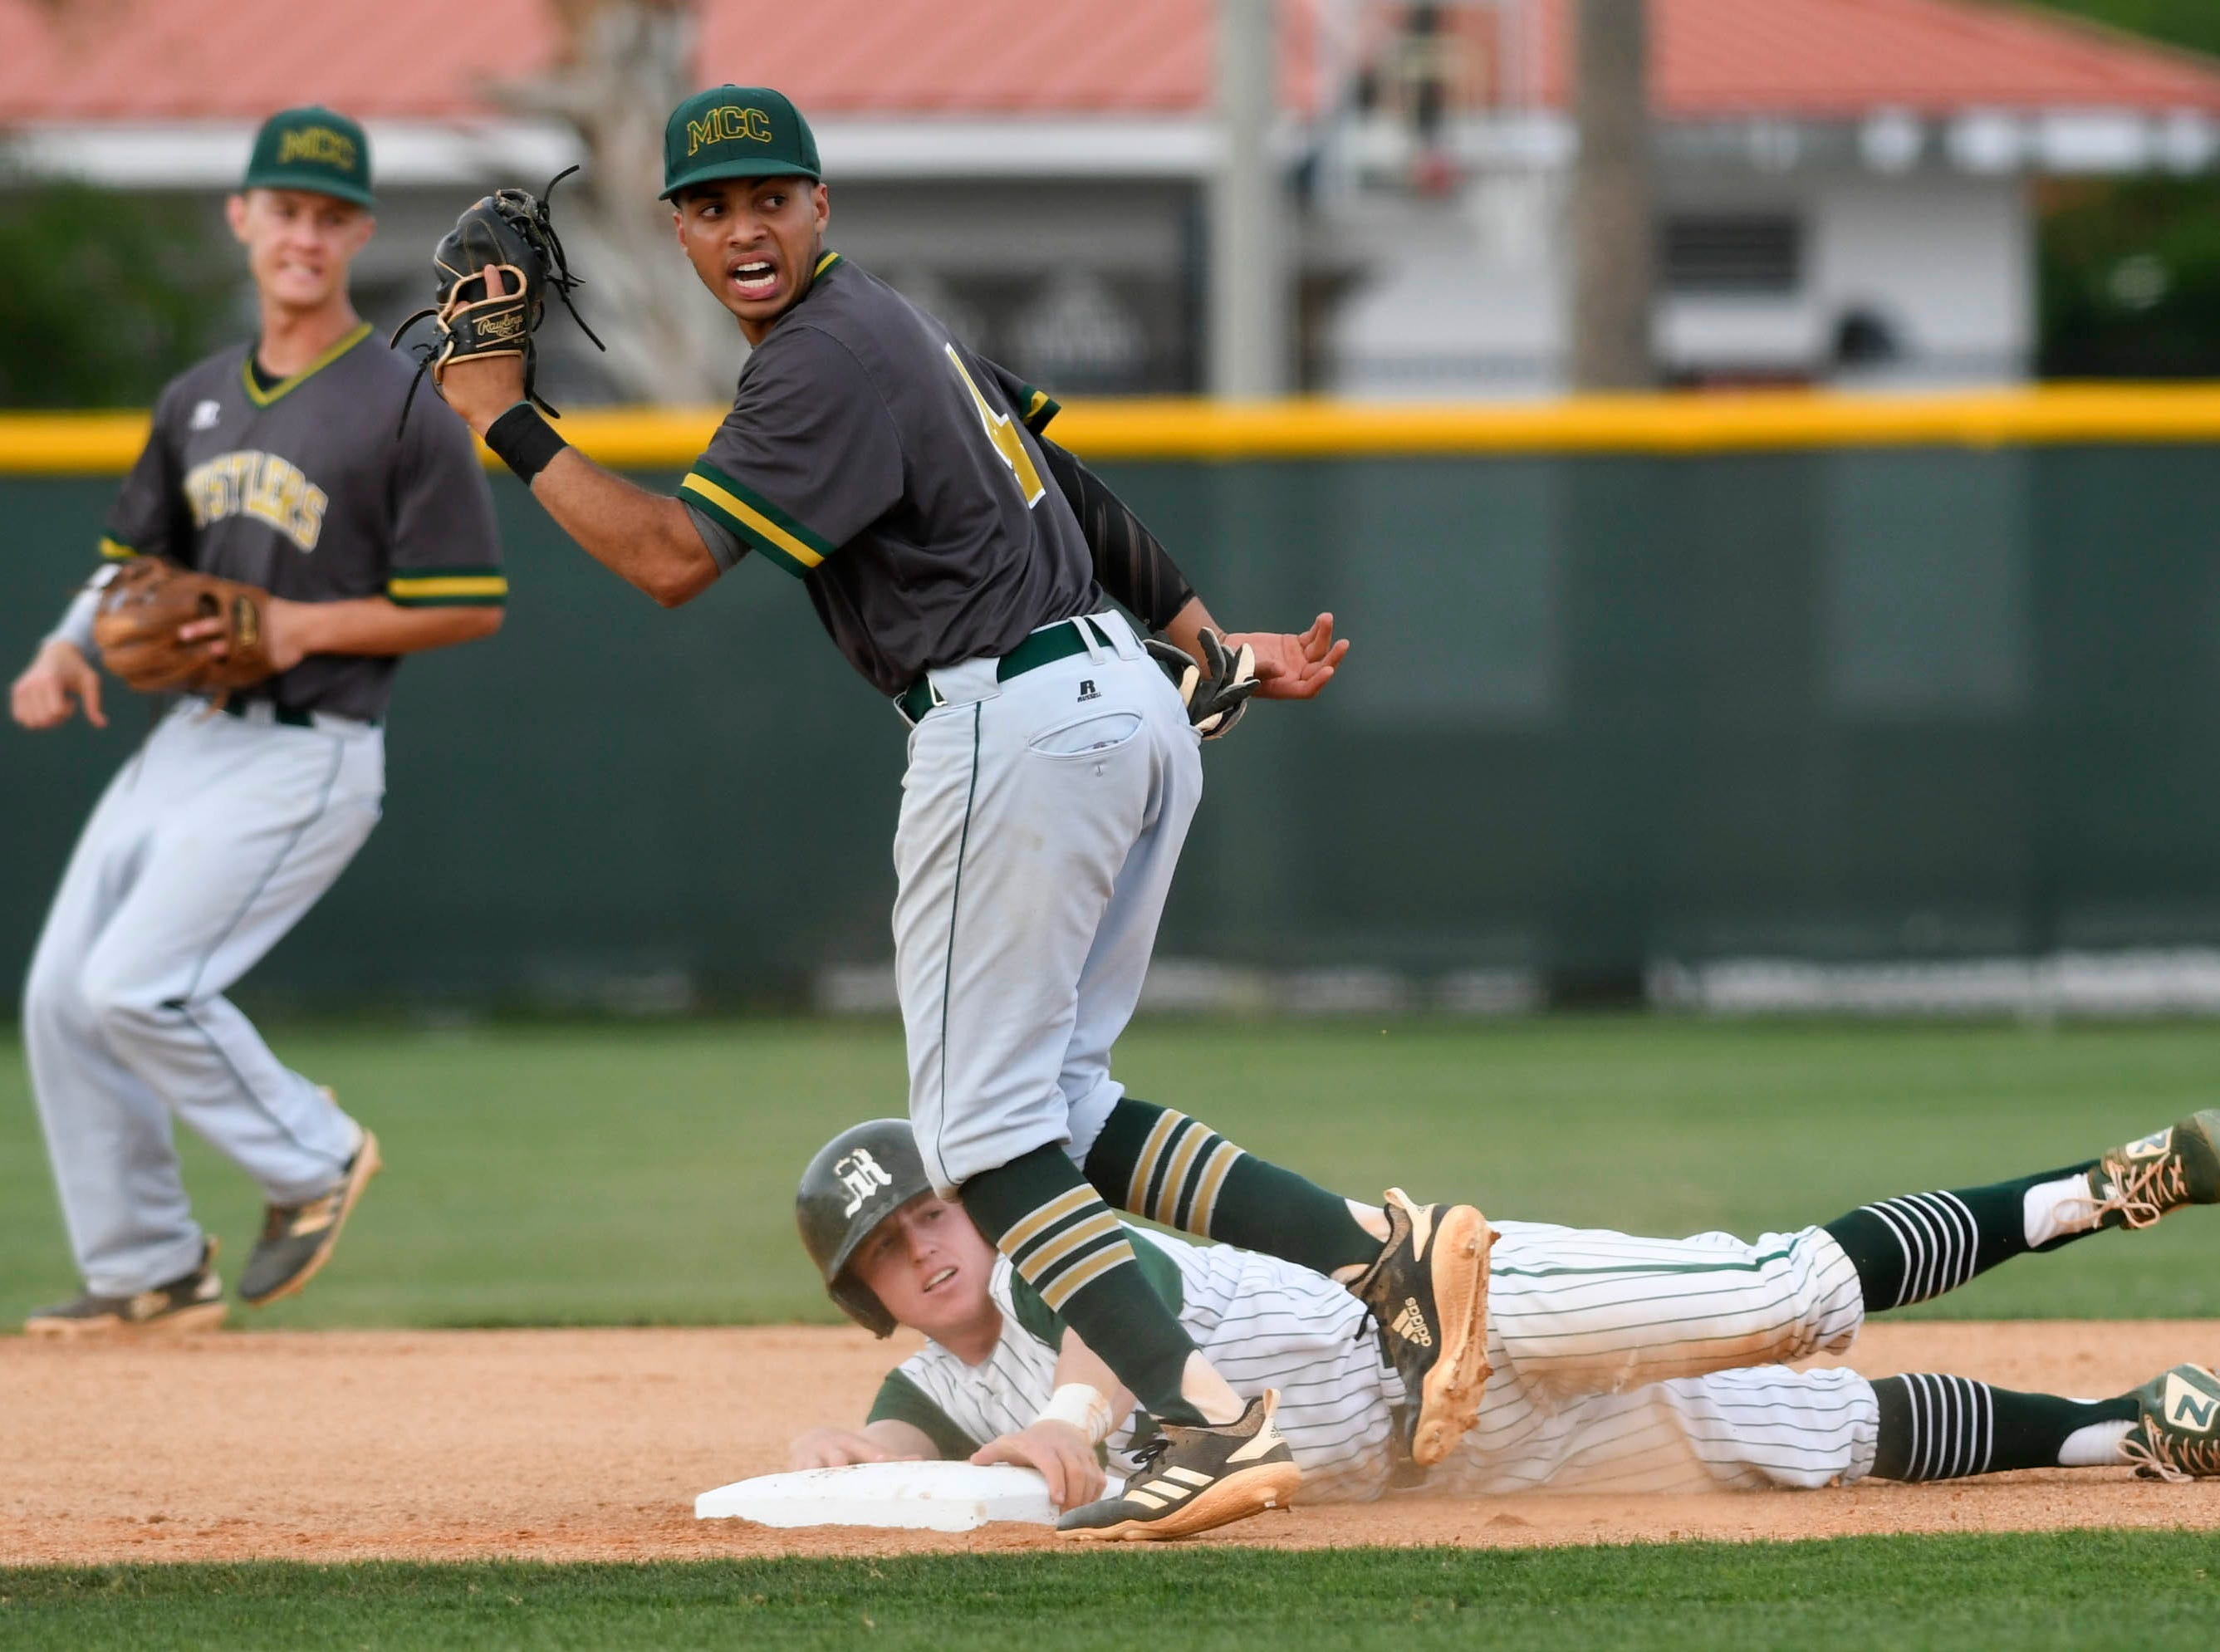 Derick Cantres of Melbourne Central Catholic tags out Melbourne baserunner Jason Blackstone during Wednesday's game in Melbourne.